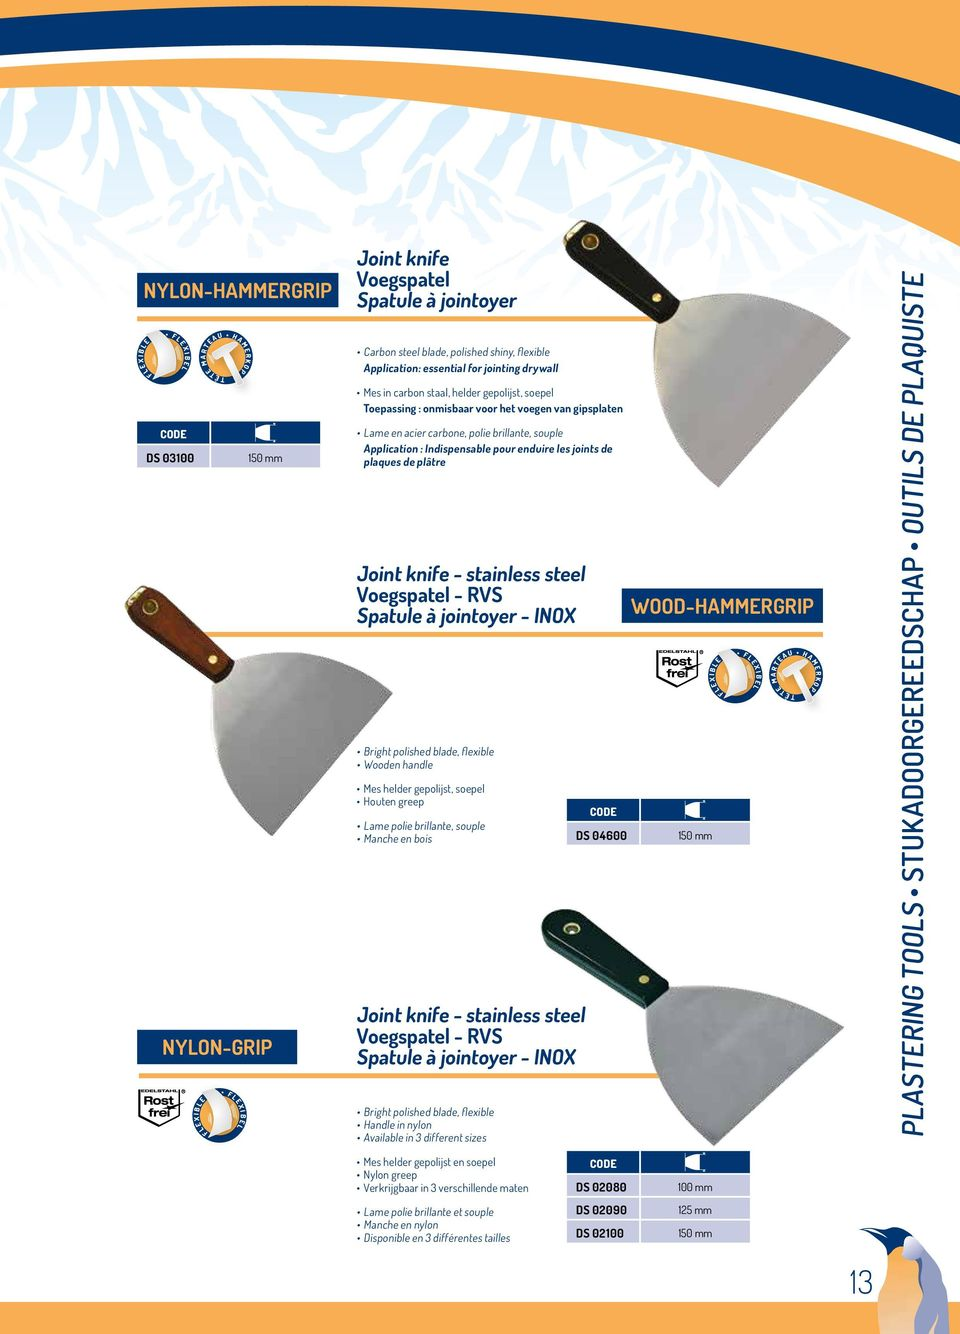 carbone, polie brillante, souple Application : Indispensable pour enduire les joints de plaques de plâtre Joint knife - stainless steel Voegspatel - RVS Spatule à jointoyer - INOX Bright polished